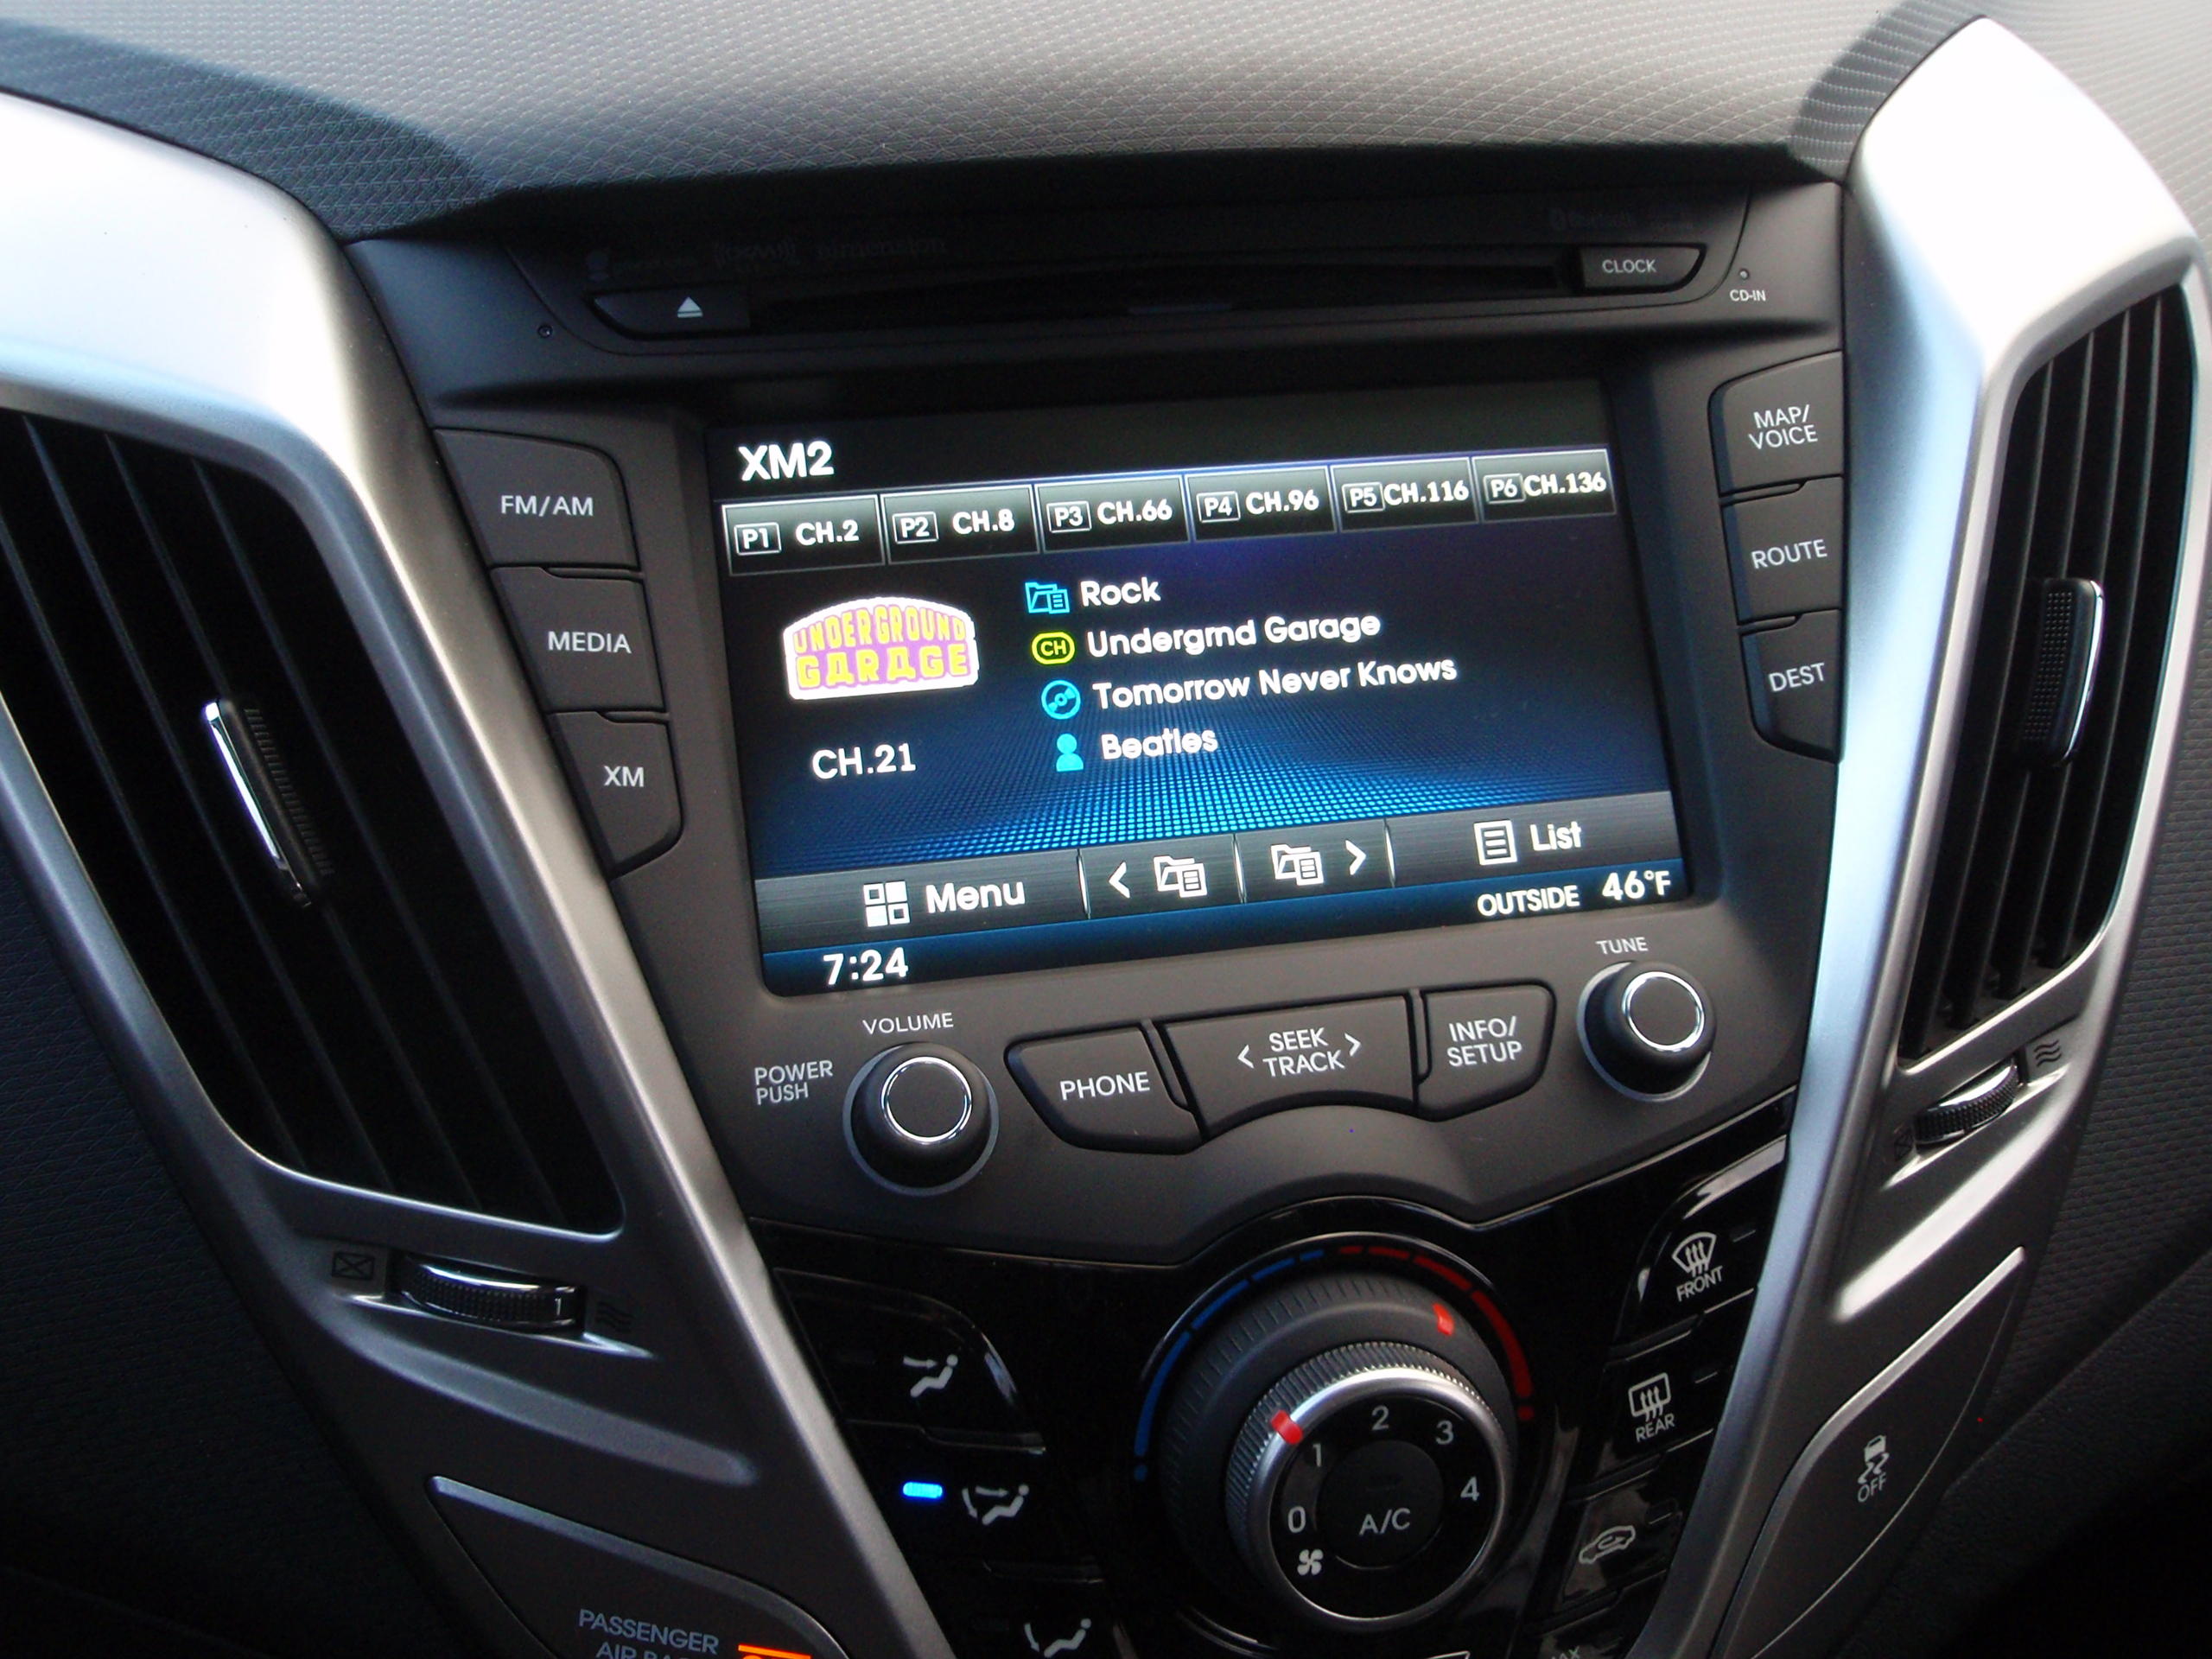 Used Cars Tucson >> 2012 Hyundai Veloster Six-Month Road Test: Infotainment Issues